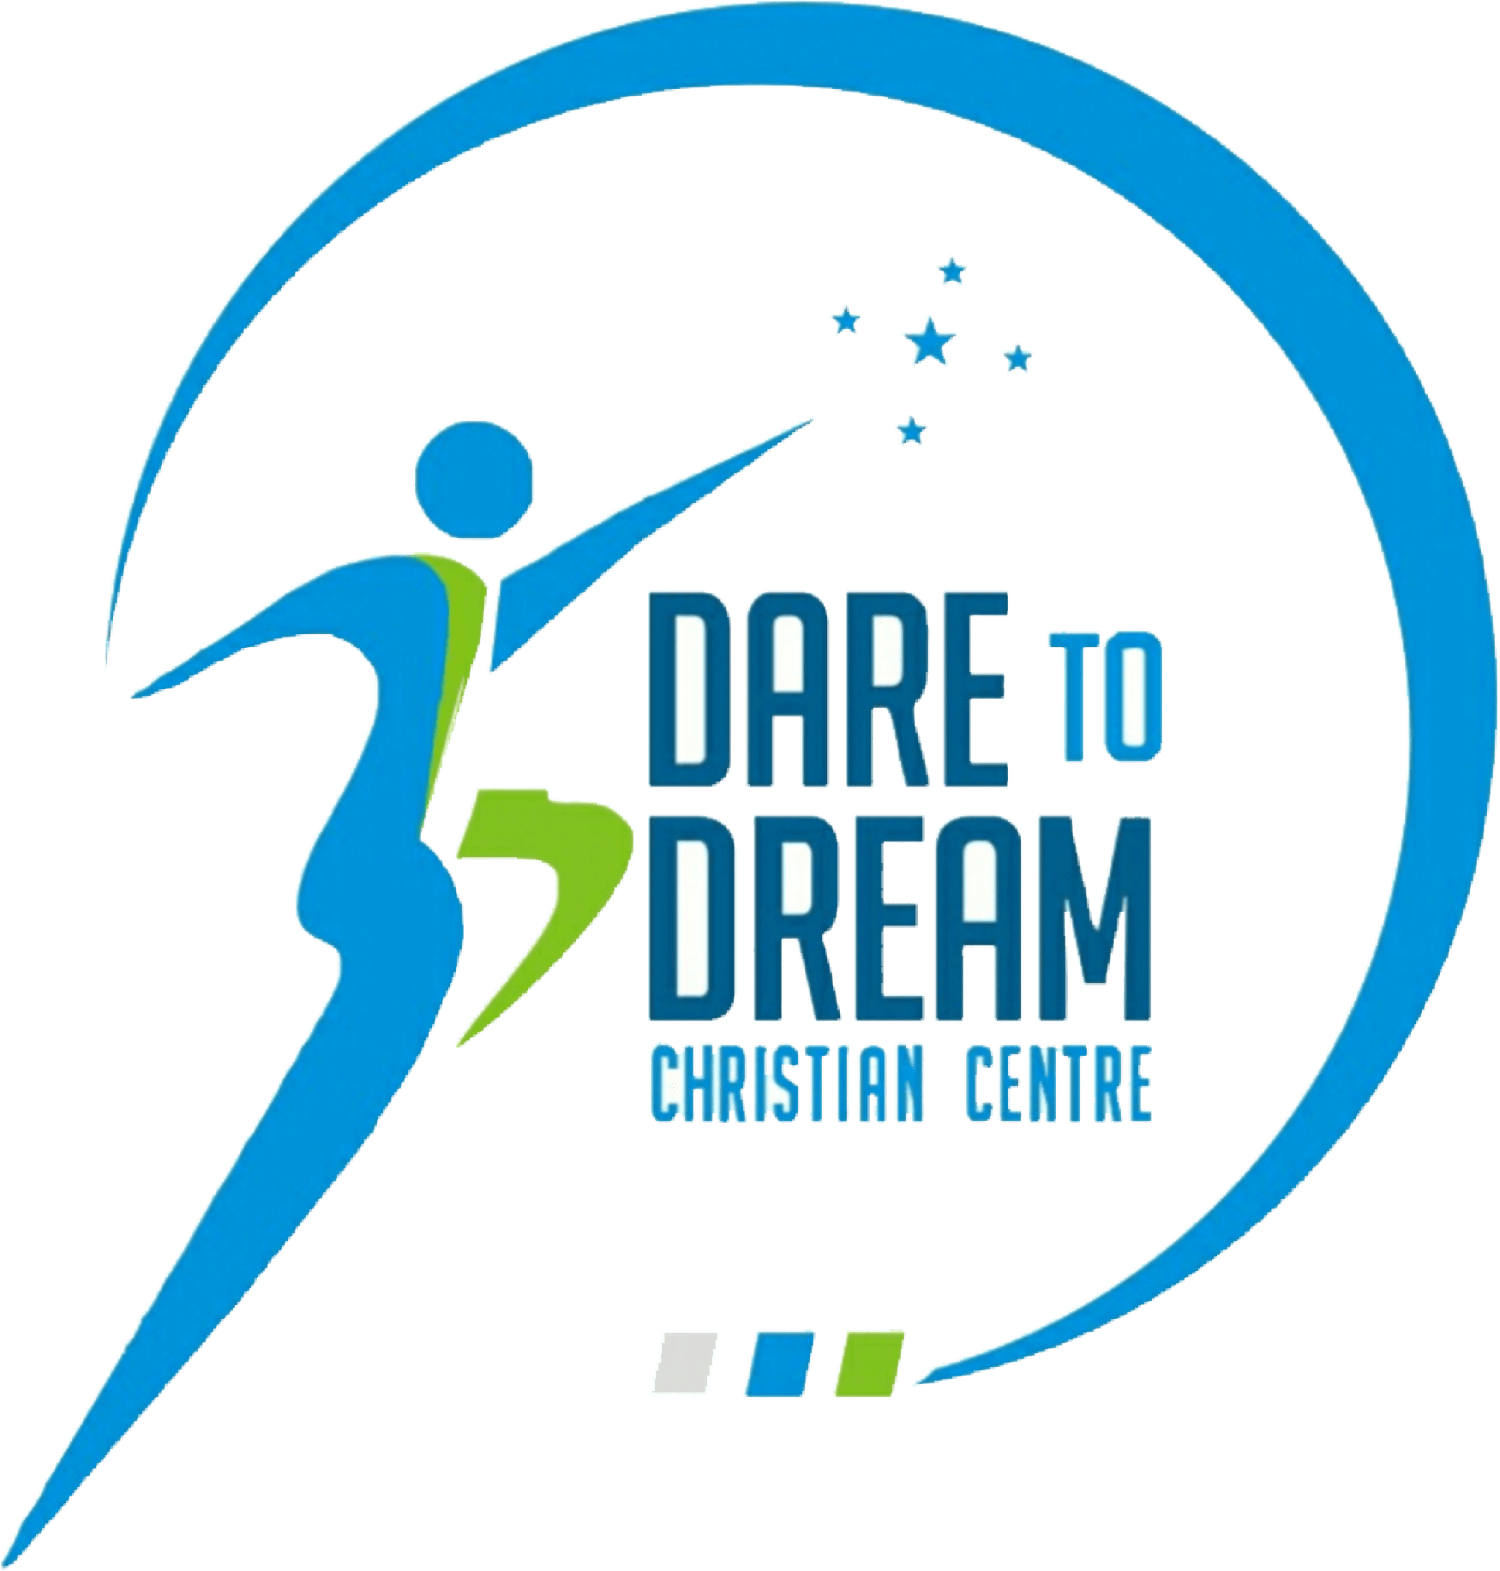 Dare To Dream Christian Center